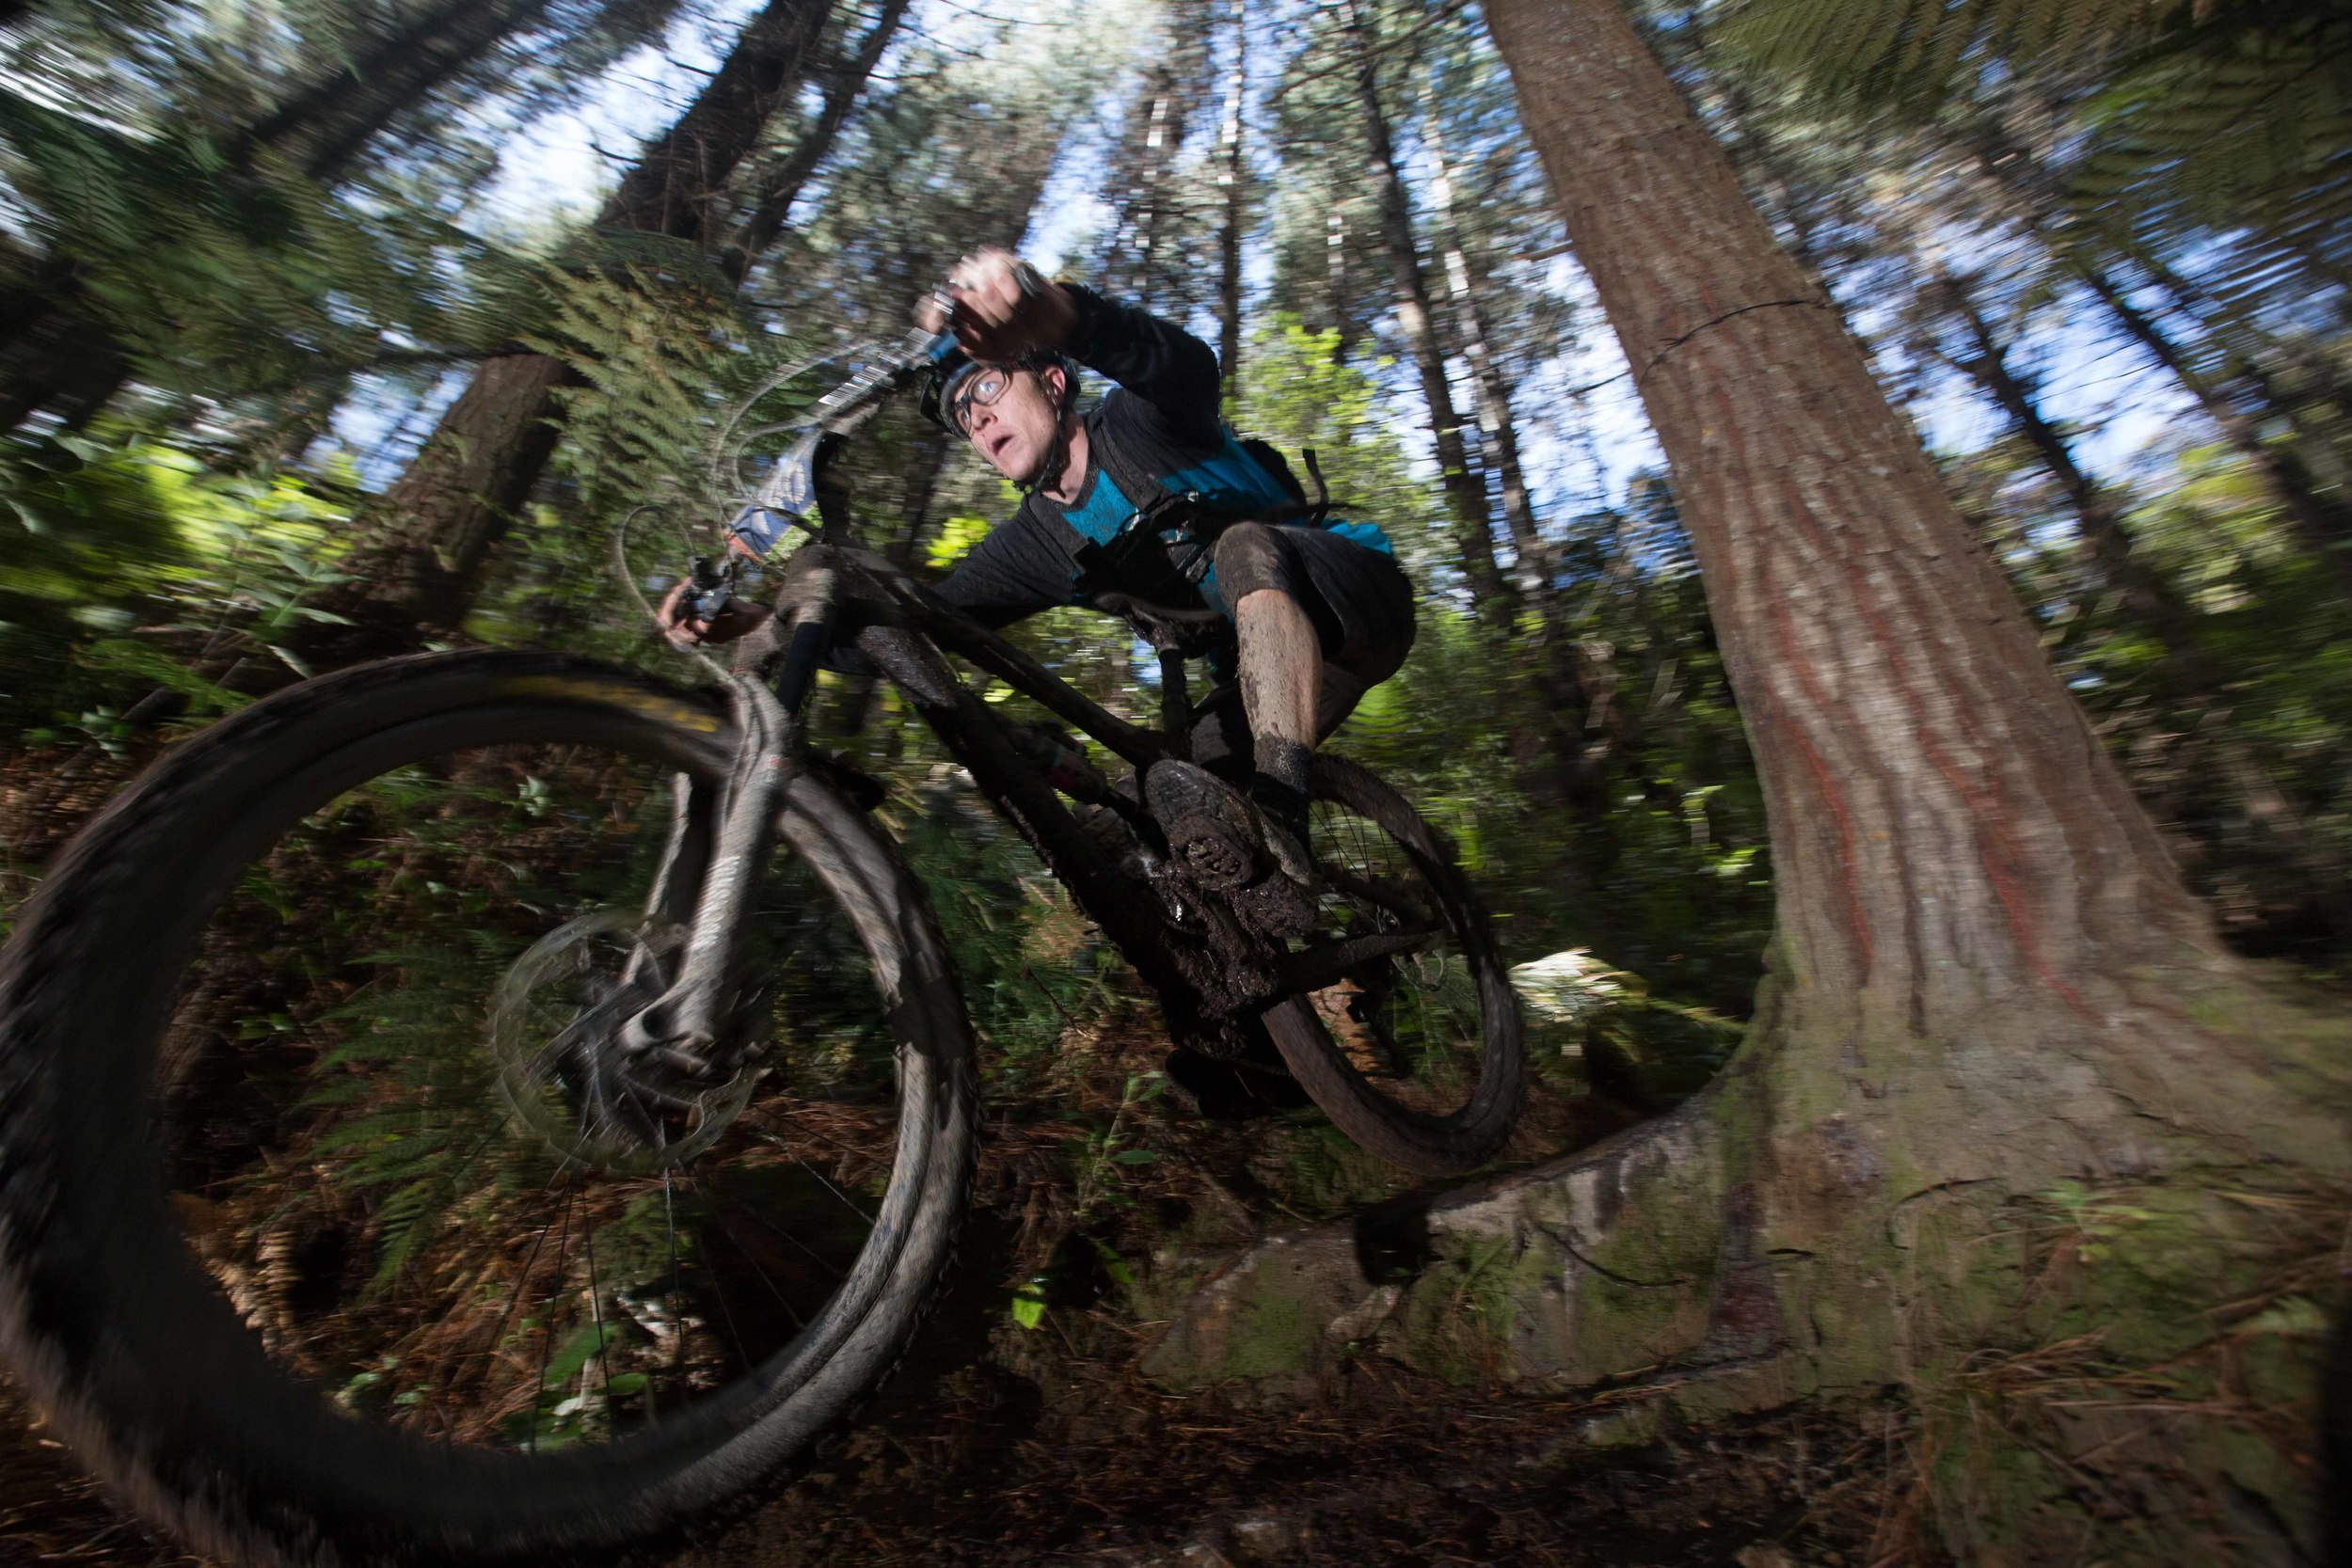 Rotorua's Ben Robson heads down the exit trail in yesterday's Giant 2W Gravity Enduro. Photo by Jamie Troughton Dscribe Media Services